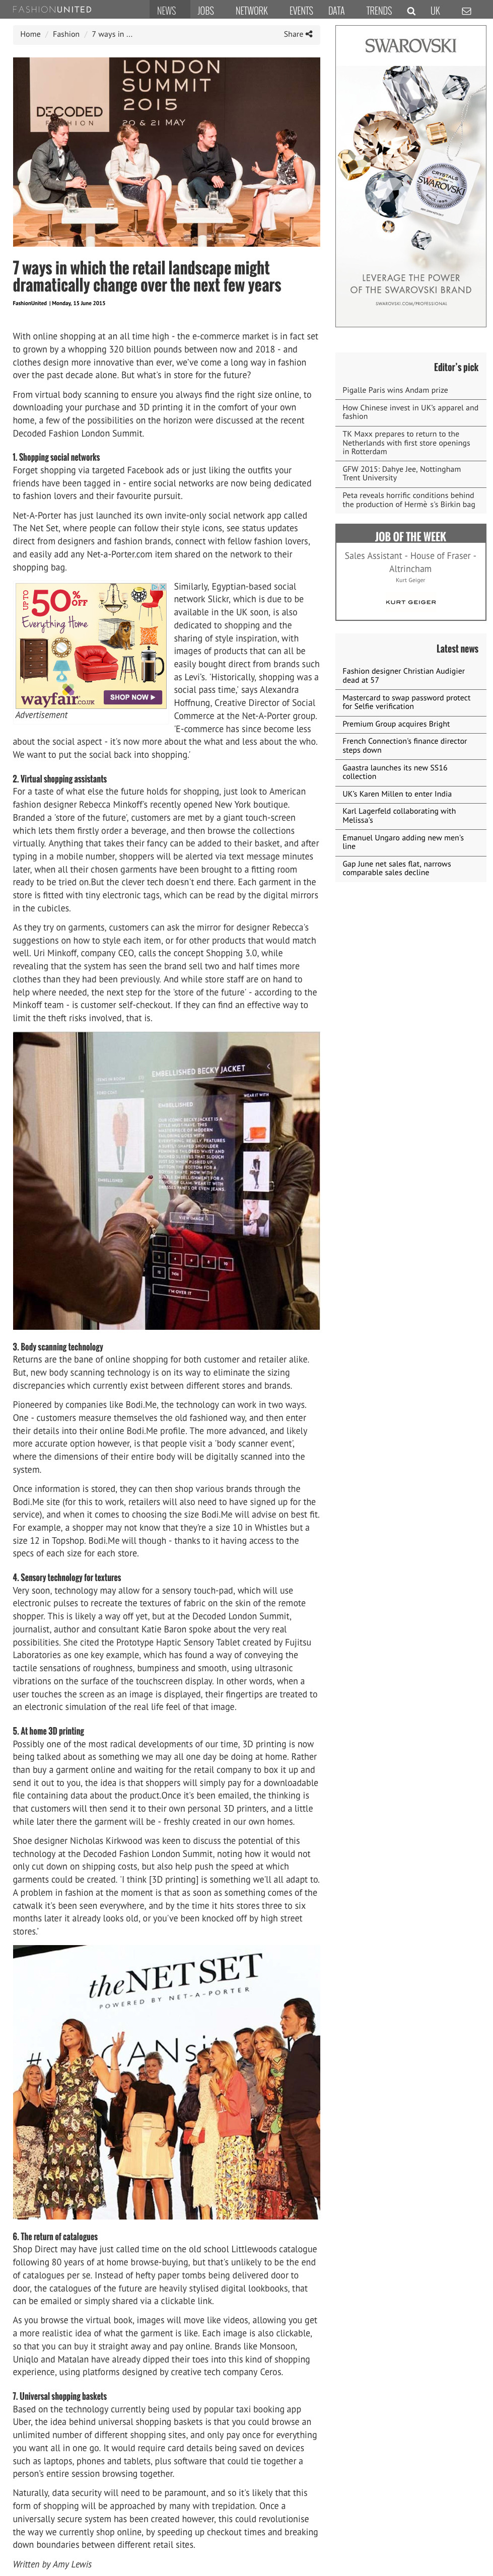 7_ways_in_which_the_retail_landscape_might_dramatically_change_over_the_next_few_years_-_2015-07-12_23.18.58 copy